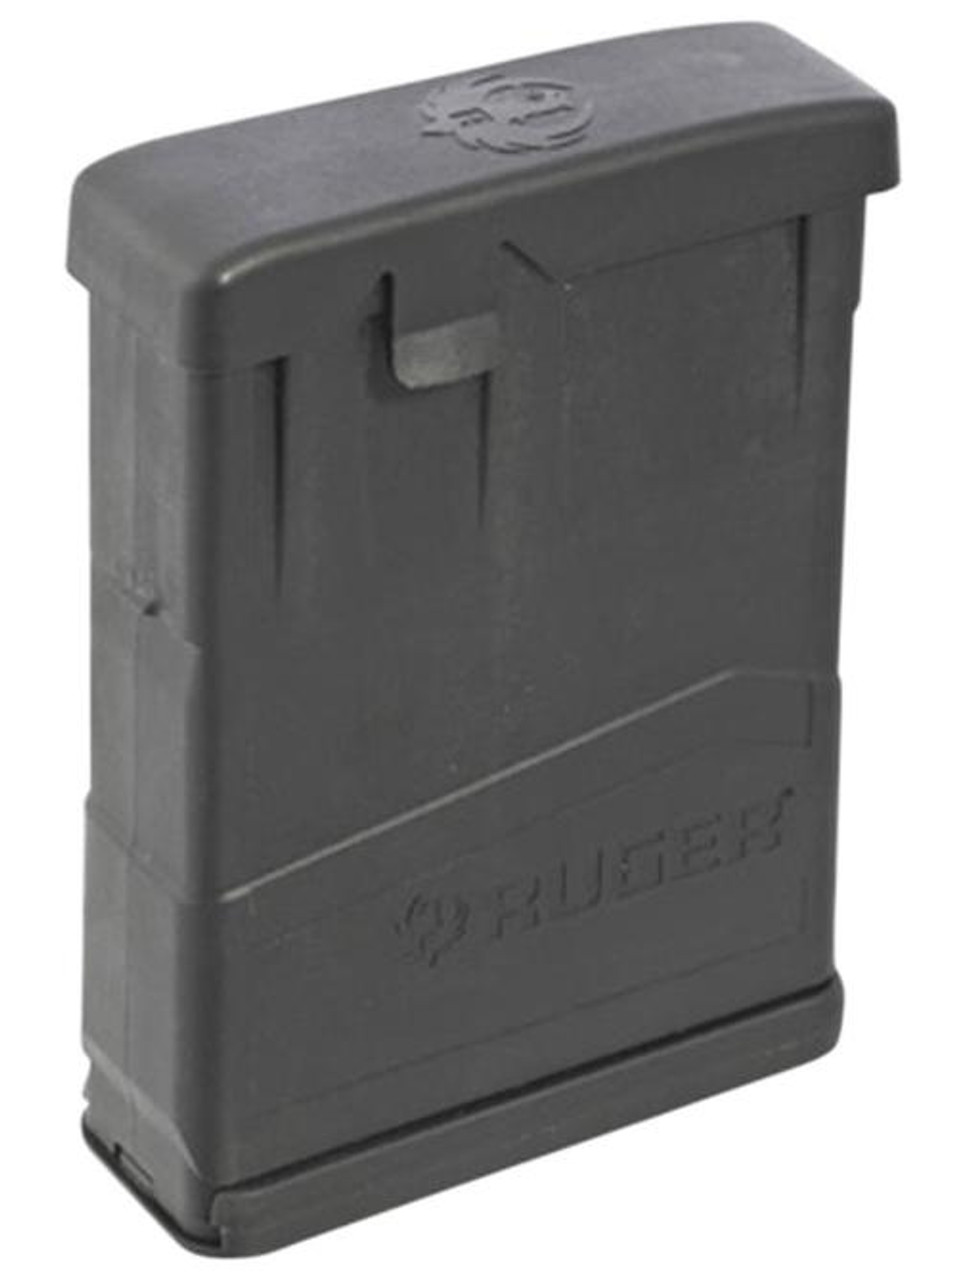 ProMag RUG22 Ruger Scout 308 Winchester//7.62 NATO 10 Round Polymer Black Finish